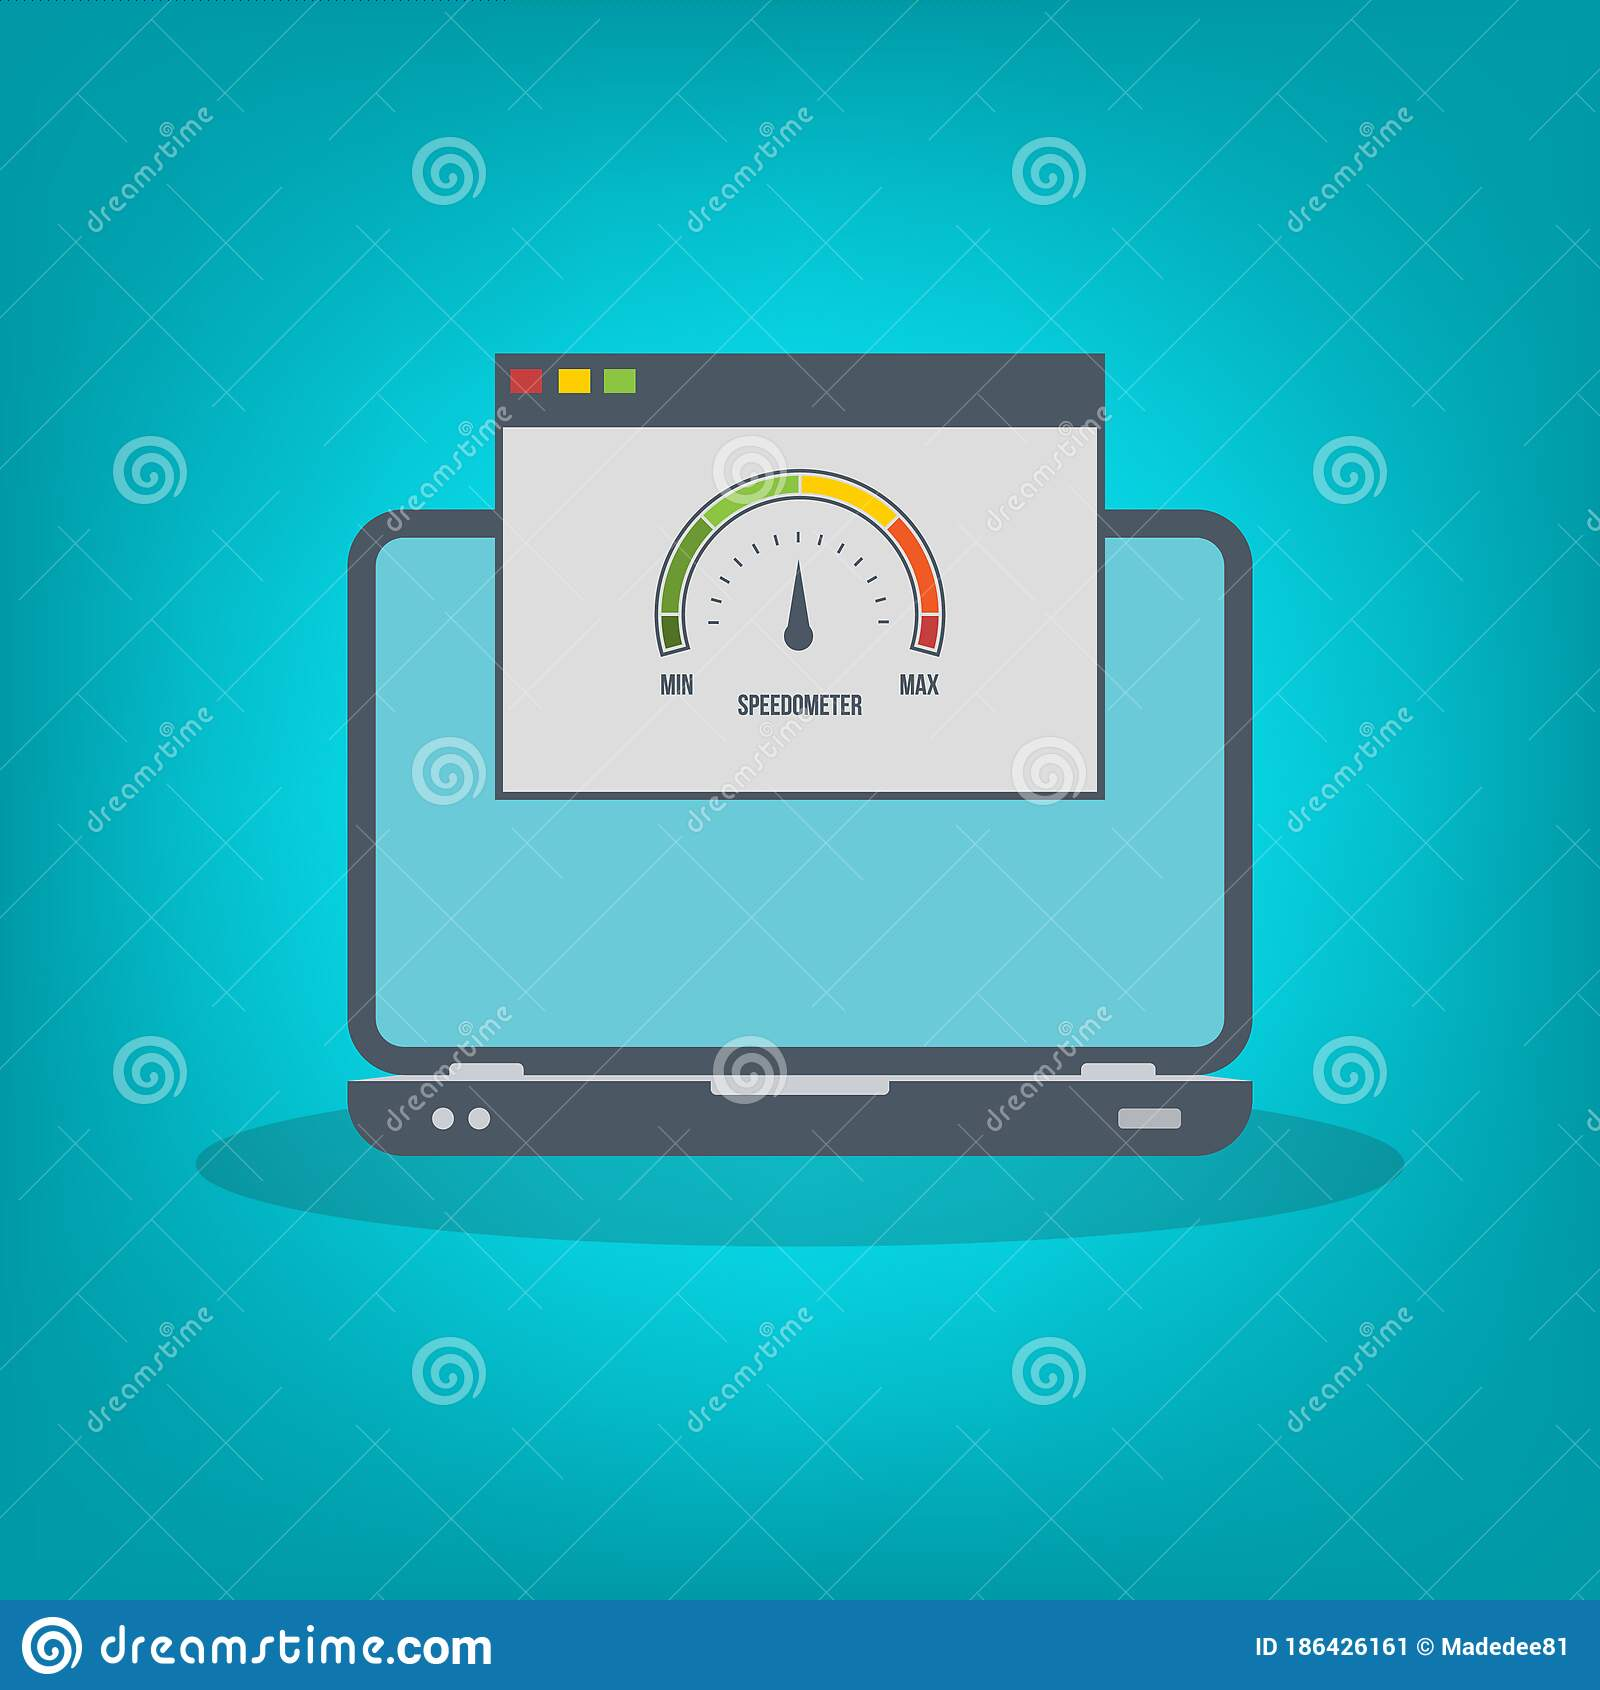 Speed Test On Laptop Speedometer Internet Speed Website Speed Loading Time Eps10 Vector Illustration All Elements Are In Sepa Stock Vector Illustration Of Illustration White 186426161